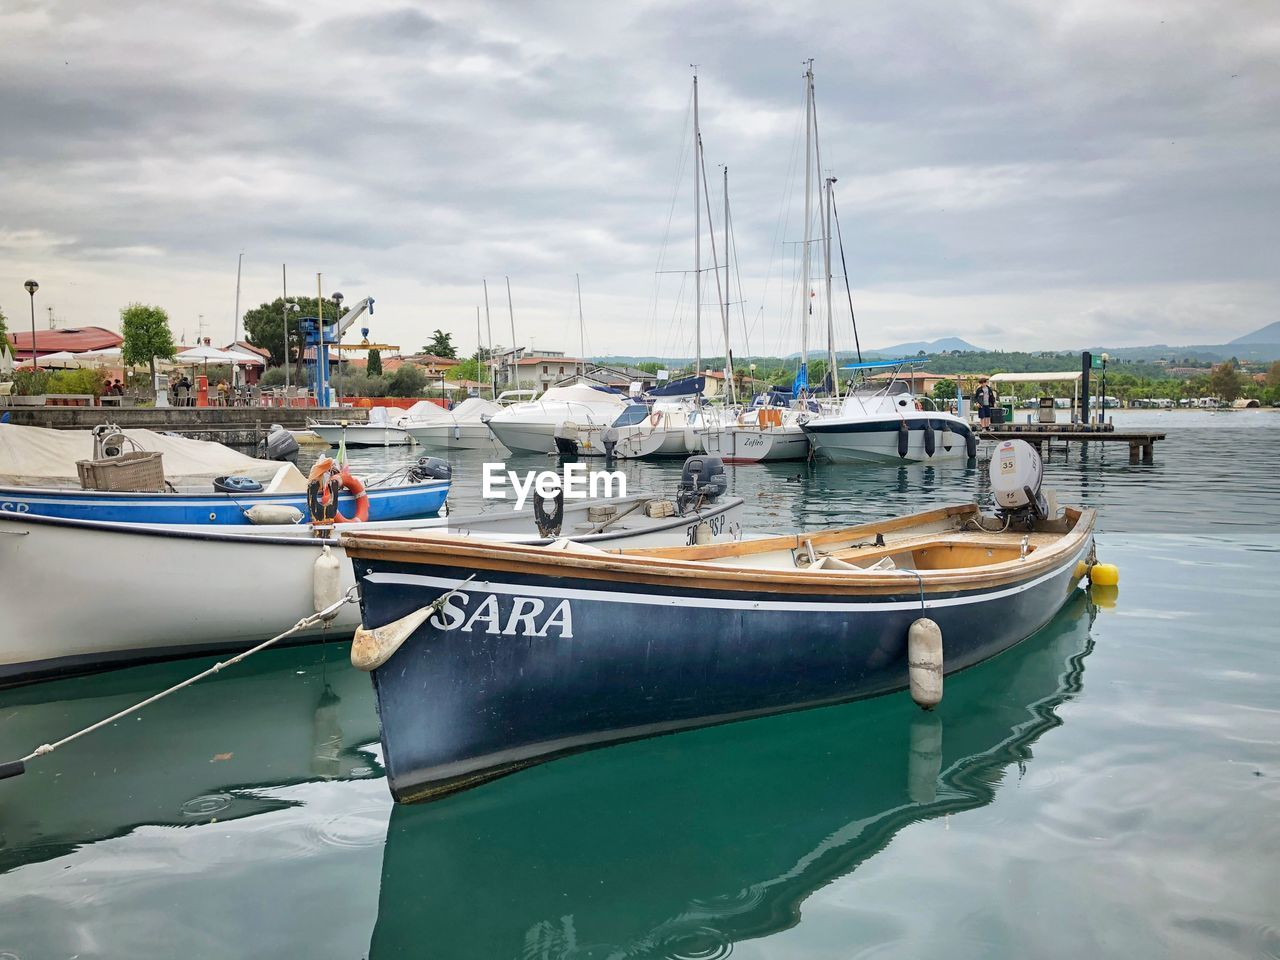 nautical vessel, transportation, mode of transportation, water, moored, cloud - sky, sky, harbor, nature, sailboat, day, waterfront, sea, pole, reflection, no people, mast, outdoors, pier, marina, fishing industry, port, yacht, fishing boat, anchored